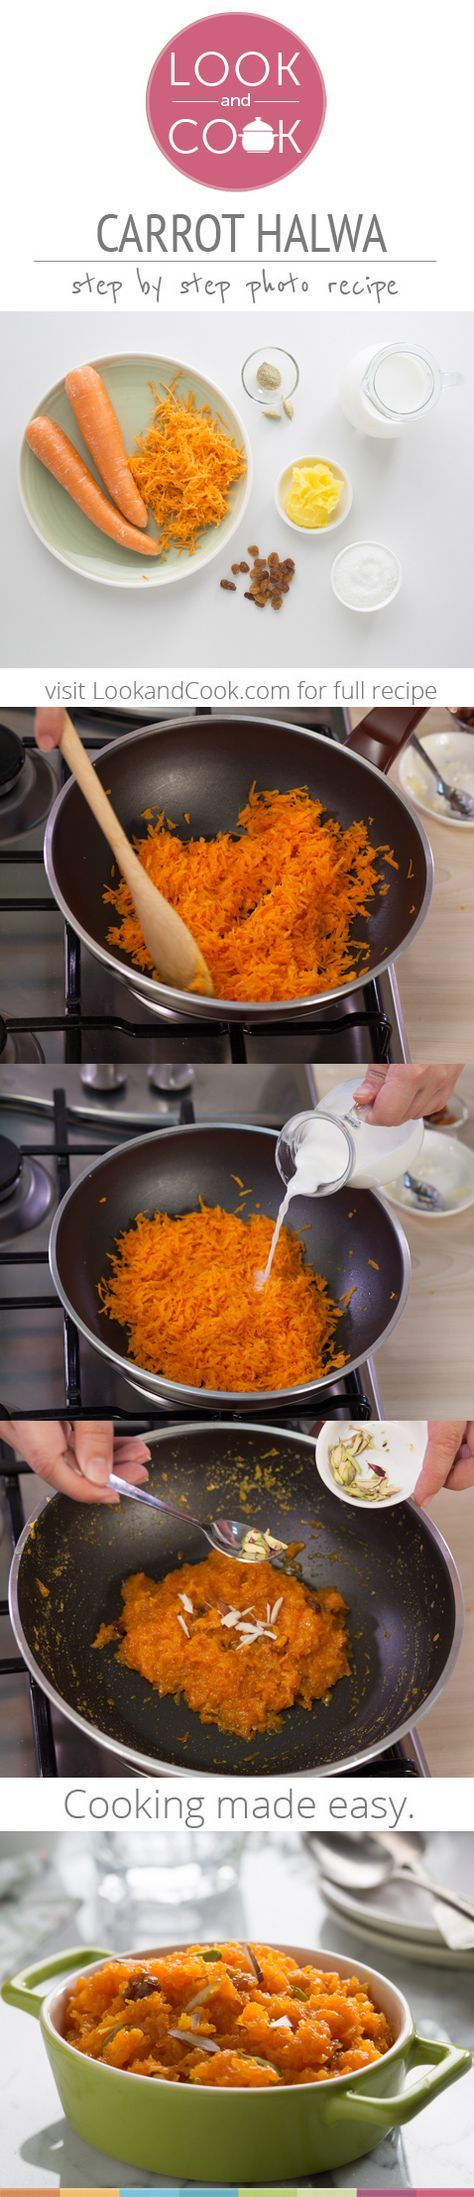 CARROT HALWA RECIPE Carrot Halwa Recipe (#LC14140): This step by step recipe with photos shows you how to make a simple and easy Indian sweet with fresh carrots and milk also known as Gajar halwa for an after meal sweet treat. Get step by step photo recipe at lookandcook.com